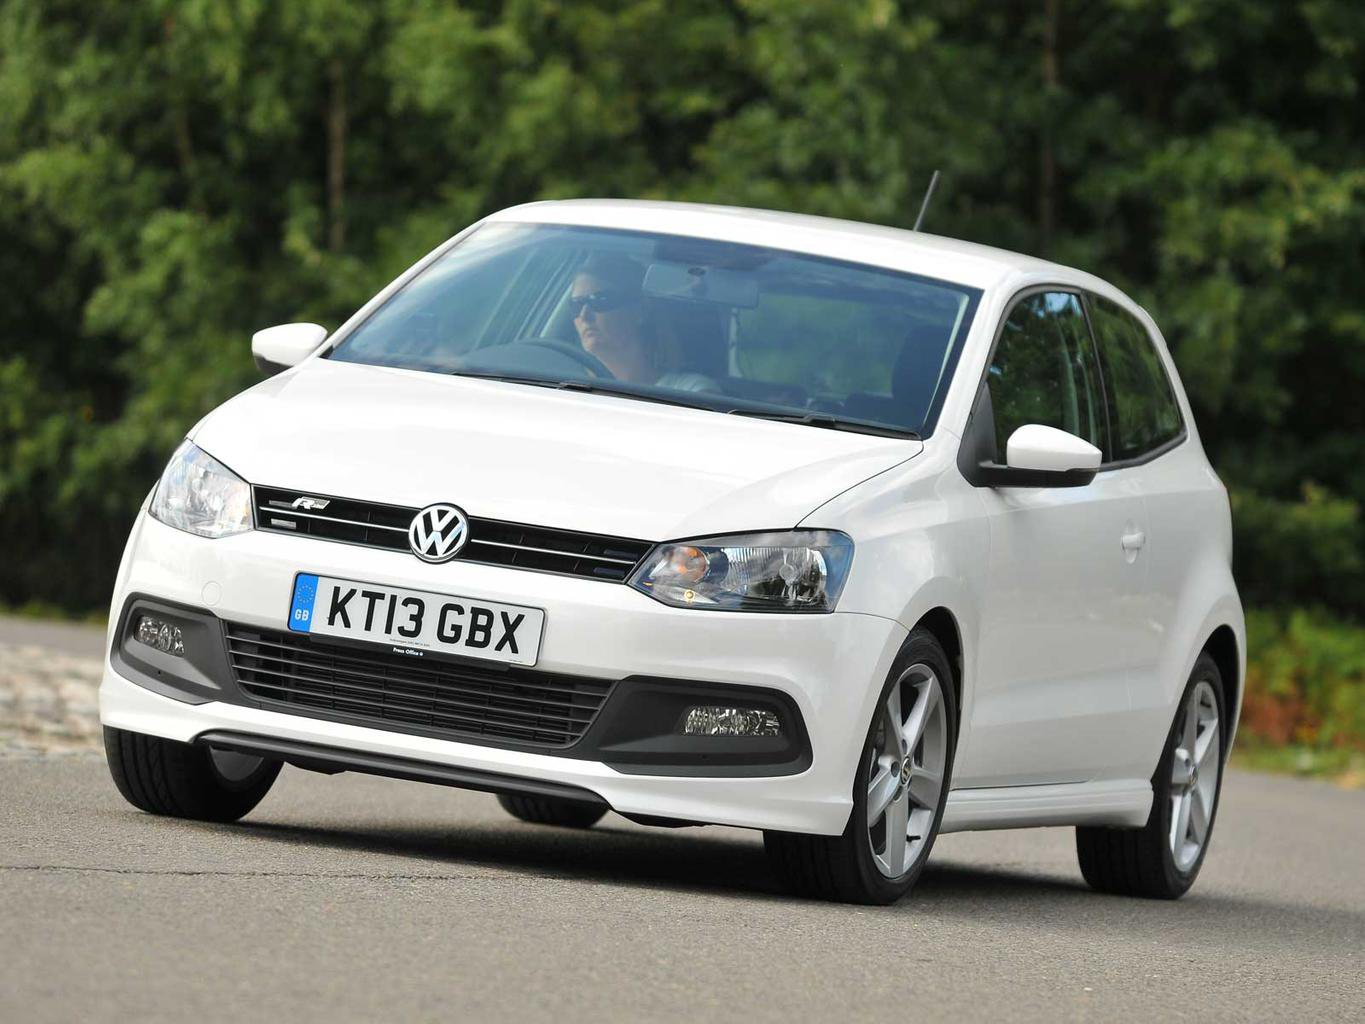 2013 VW Polo 1.2 R-Line Style review